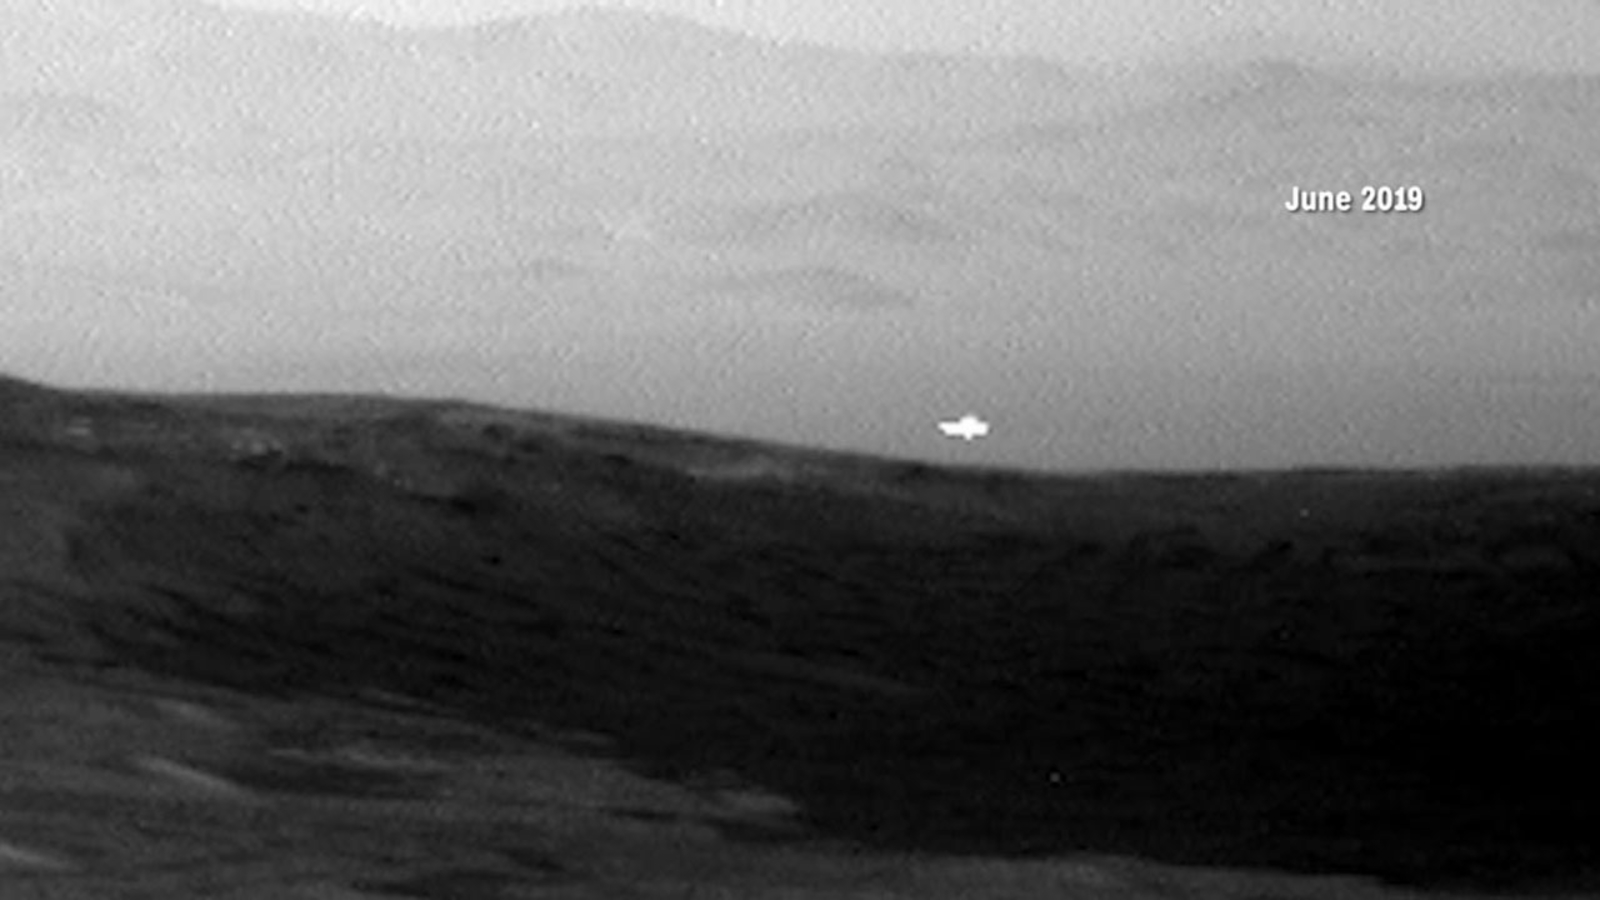 NASA Mars rover snaps photo of mysterious light in the distance